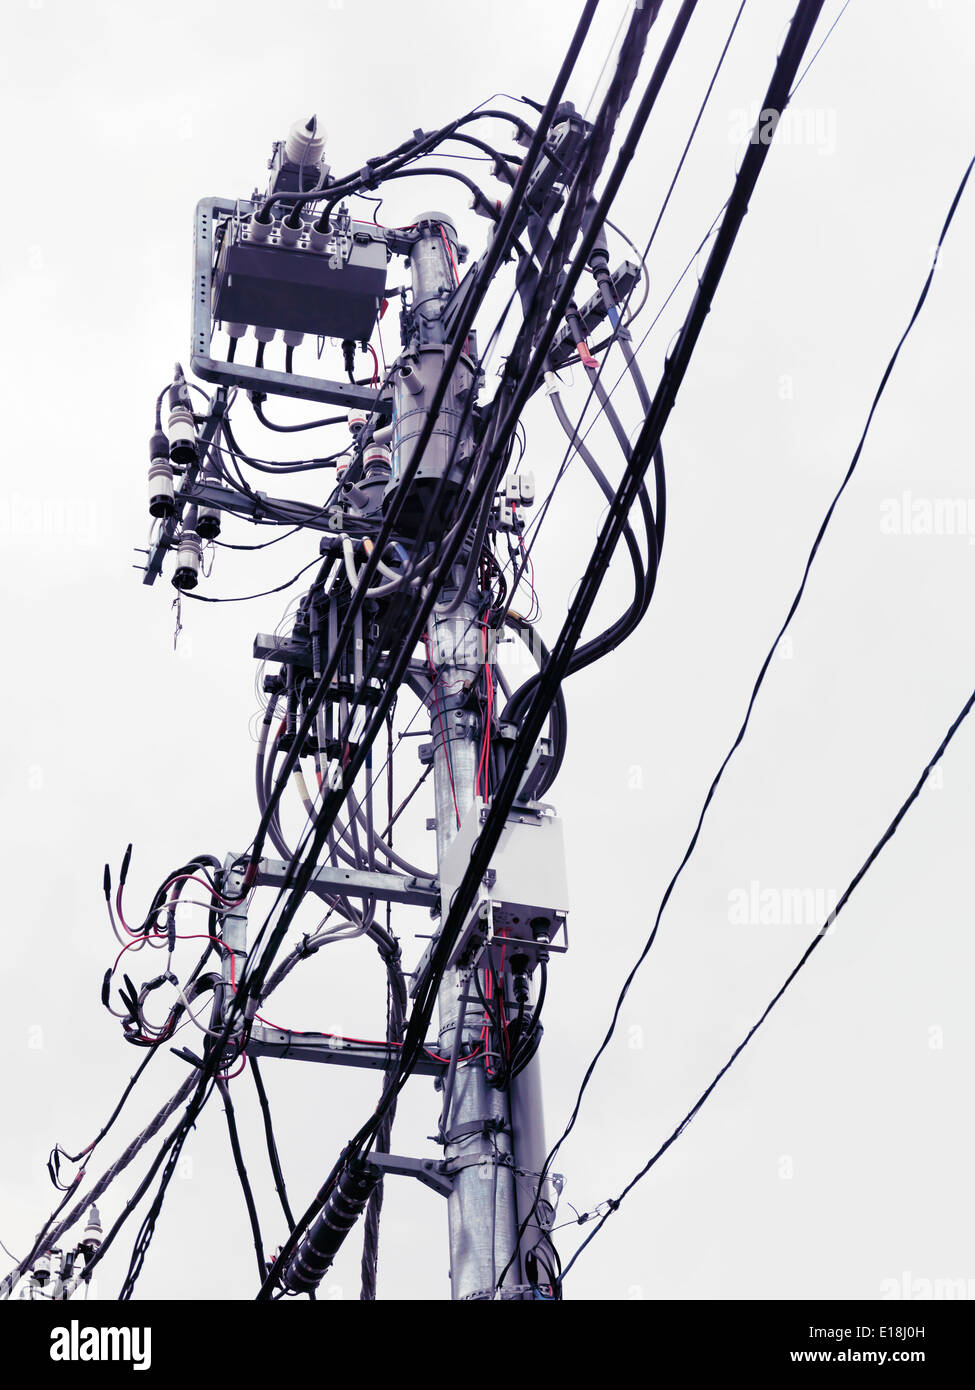 Complex busy electric overhead wiring in Tokyo Japan - Stock Image